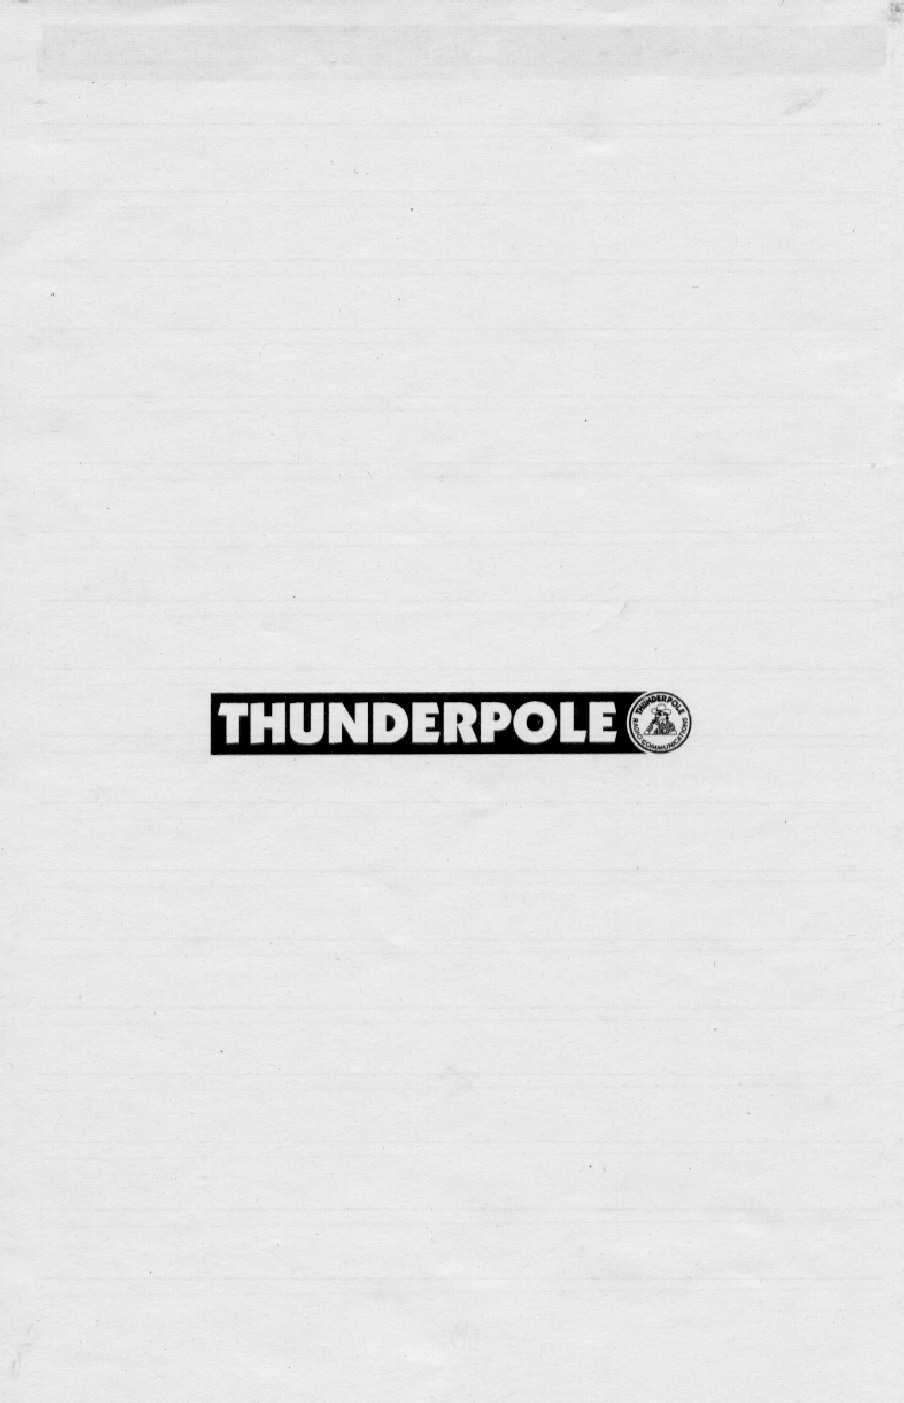 Thunderpole T-1000 (Routier) 18-9c510